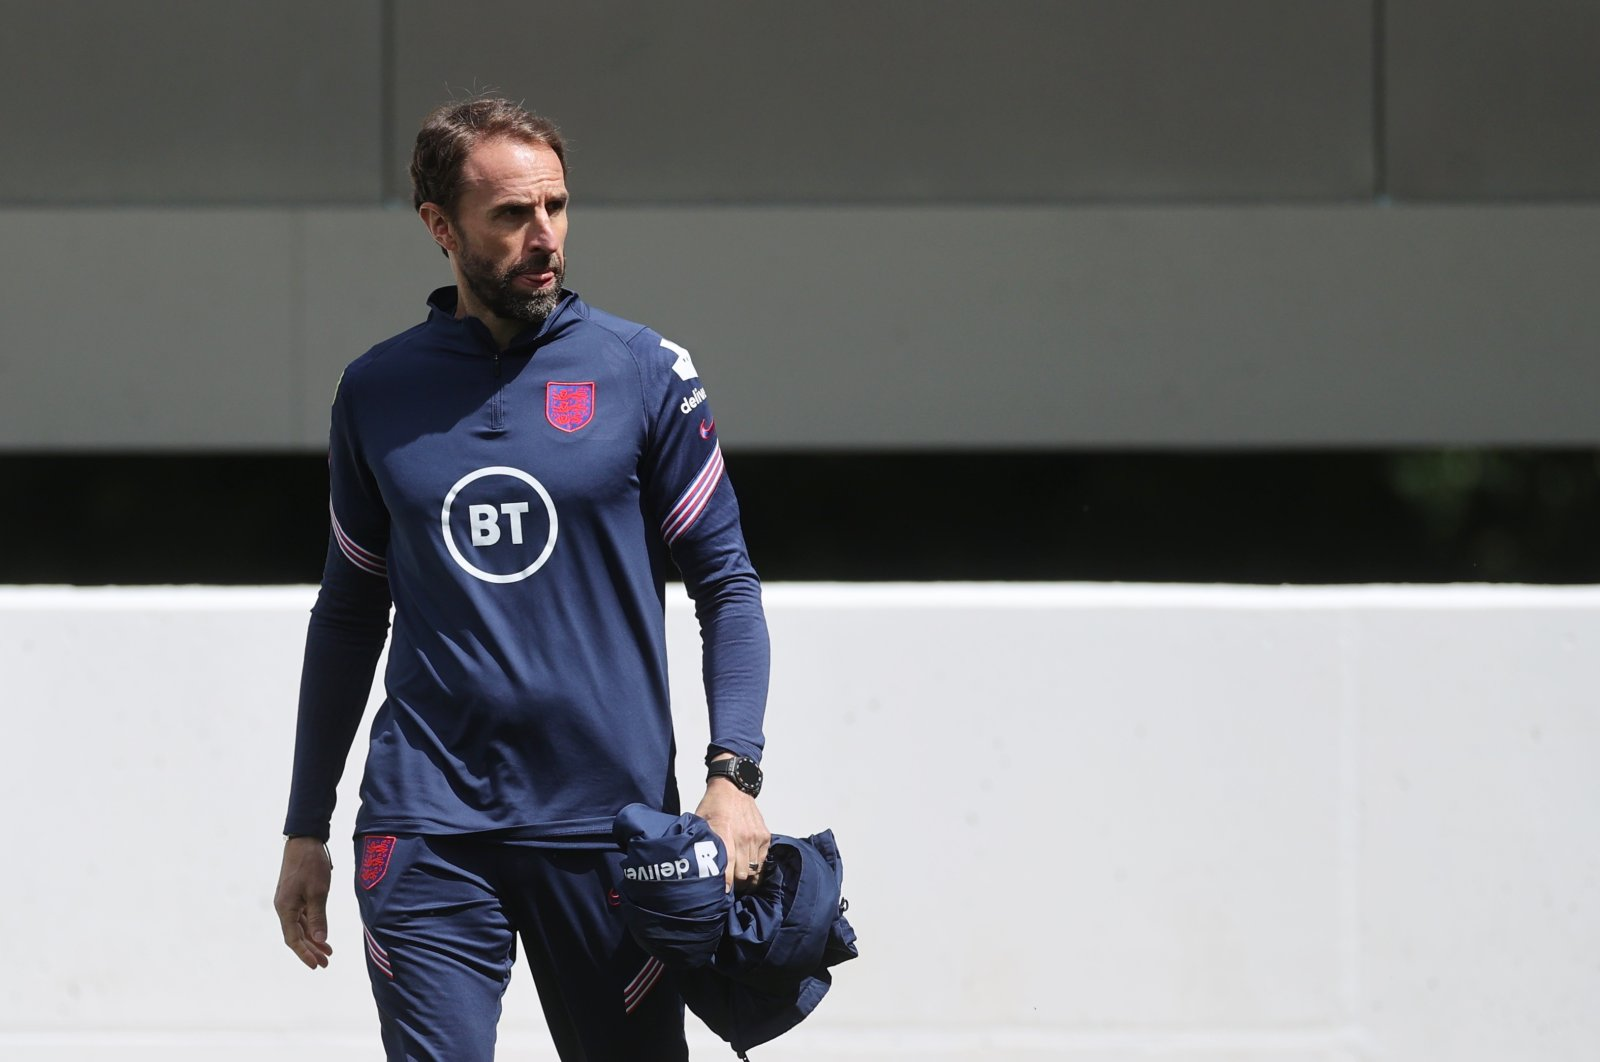 England manager Gareth Southgate during training, St. George's Park, Burton upon Trent, Britain, July 5, 2021. (Reuters Photo)